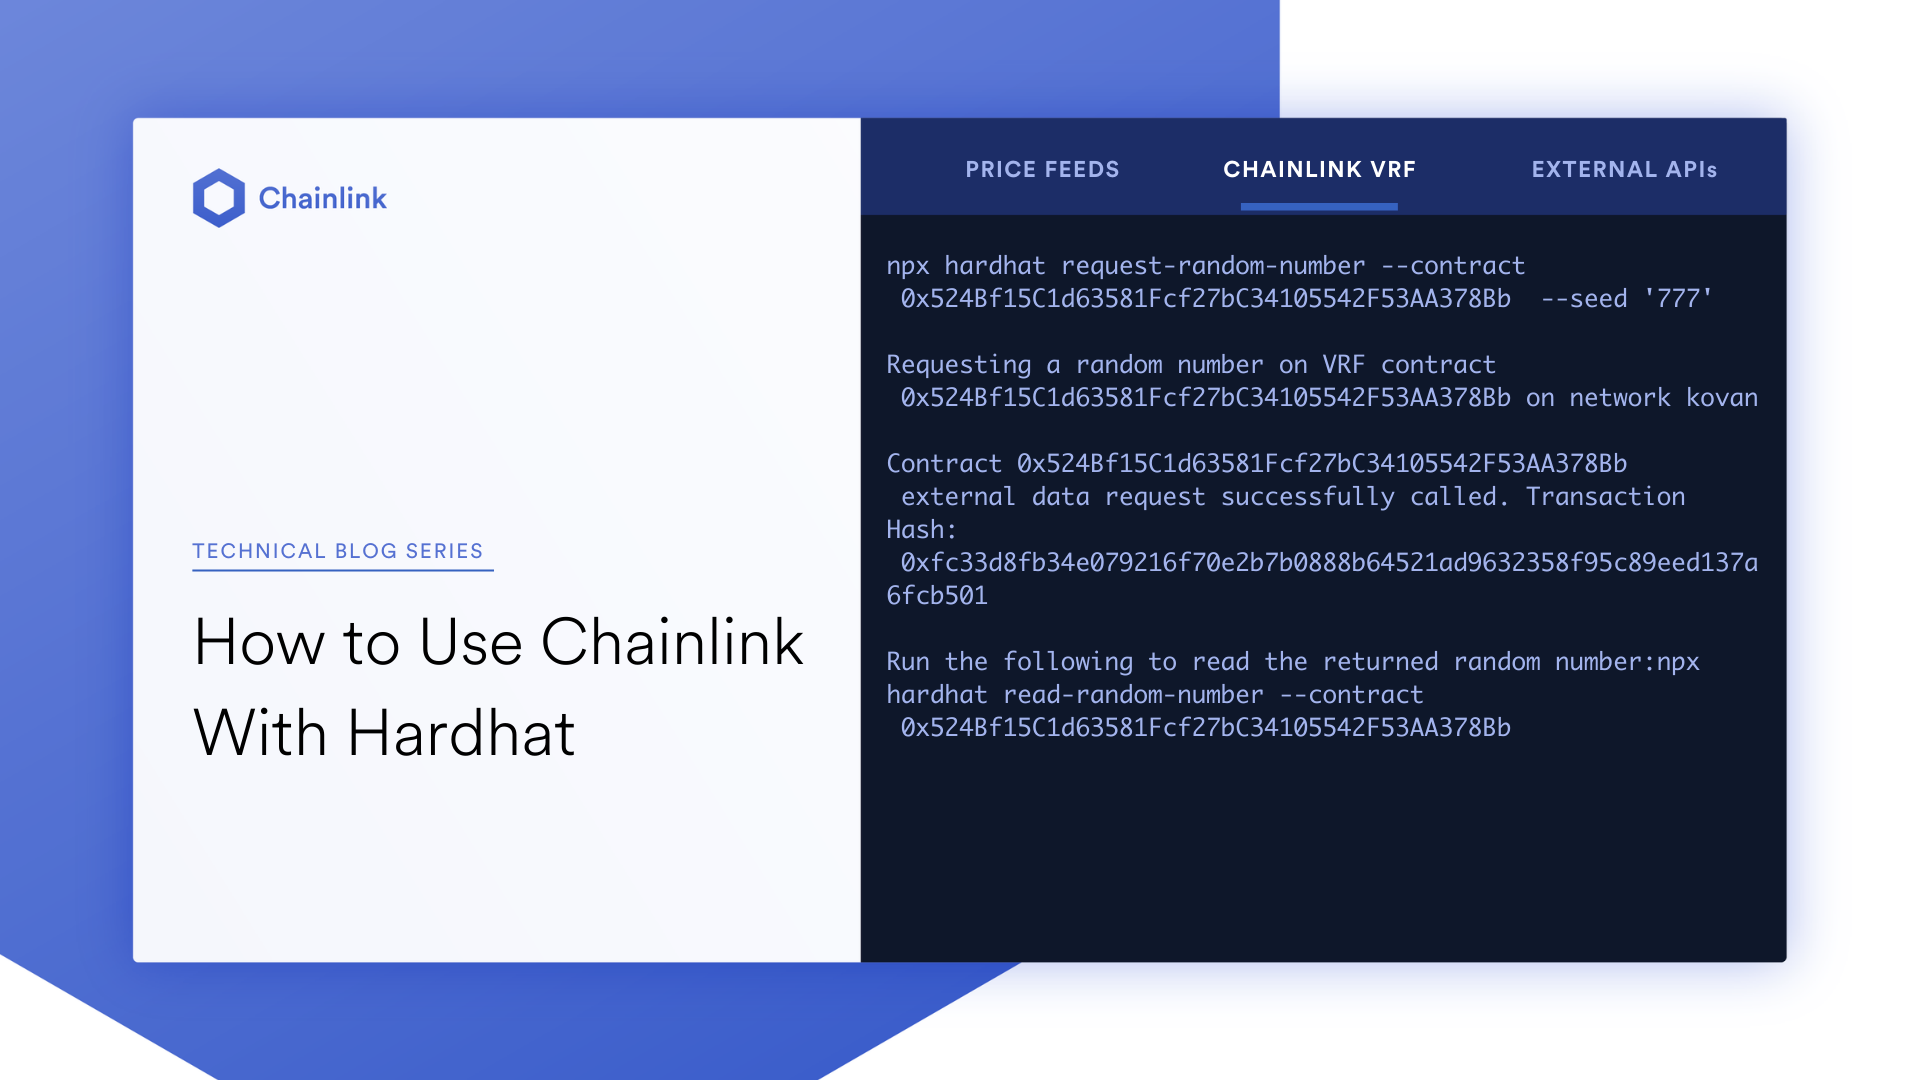 Deploying the Chainlink Hardhat Box